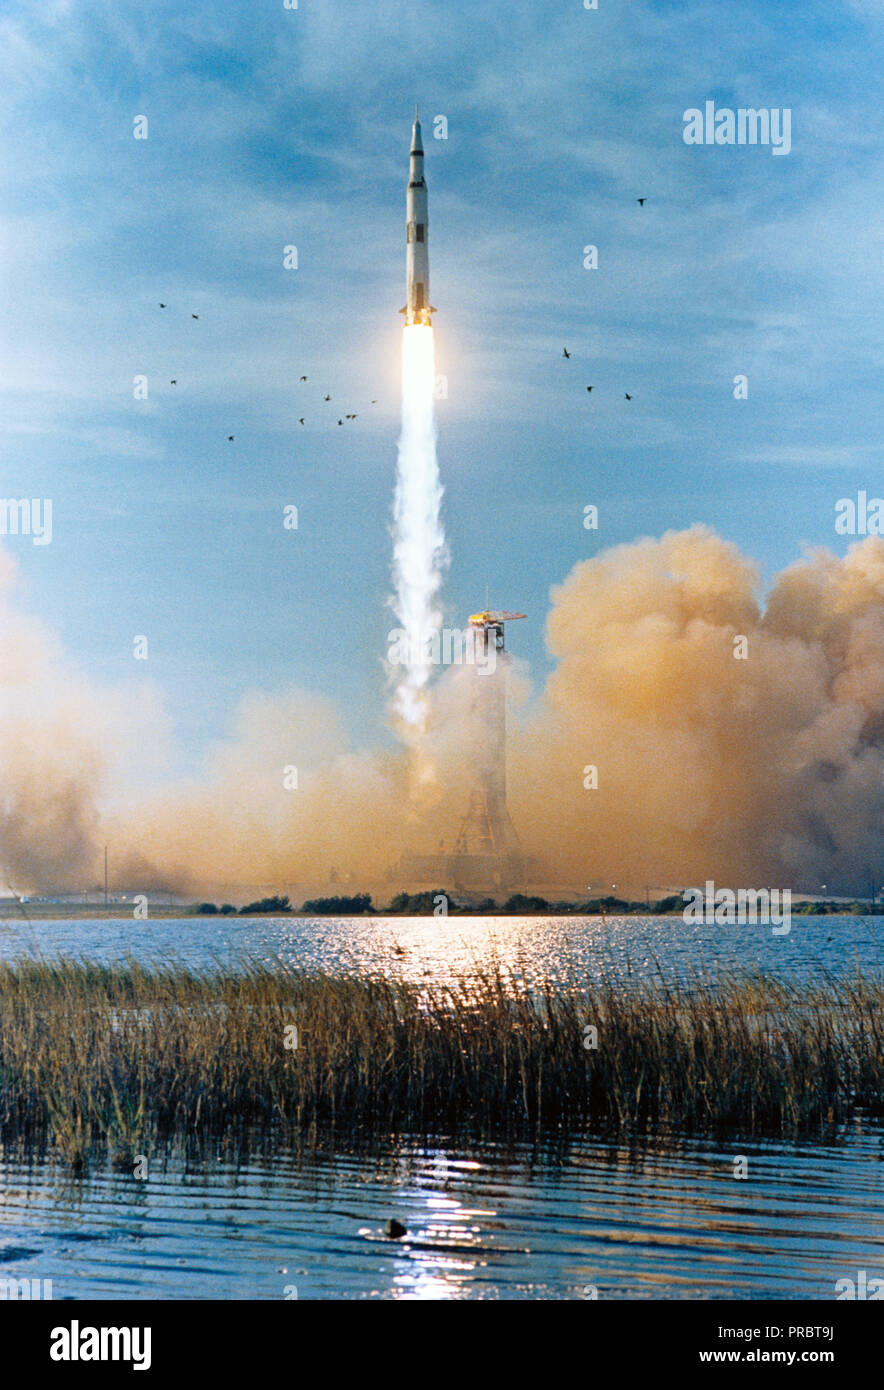 (21 Dec. 1968)--- The Apollo 8 (Spacecraft 103/Saturn 503) space vehicle is launched from Pad A, Launch Complex 39, Kennedy Space Center (KSC), at 7:51 a.m. (EST), Dec. 21, 1968. The crew of the Apollo 8 lunar orbit mission is astronauts Frank Borman, commander; James A. Lovell Jr., command module pilot; and William A. Anders, lunar module pilot. Apollo 8 is the first manned Saturn V launch. - Stock Image